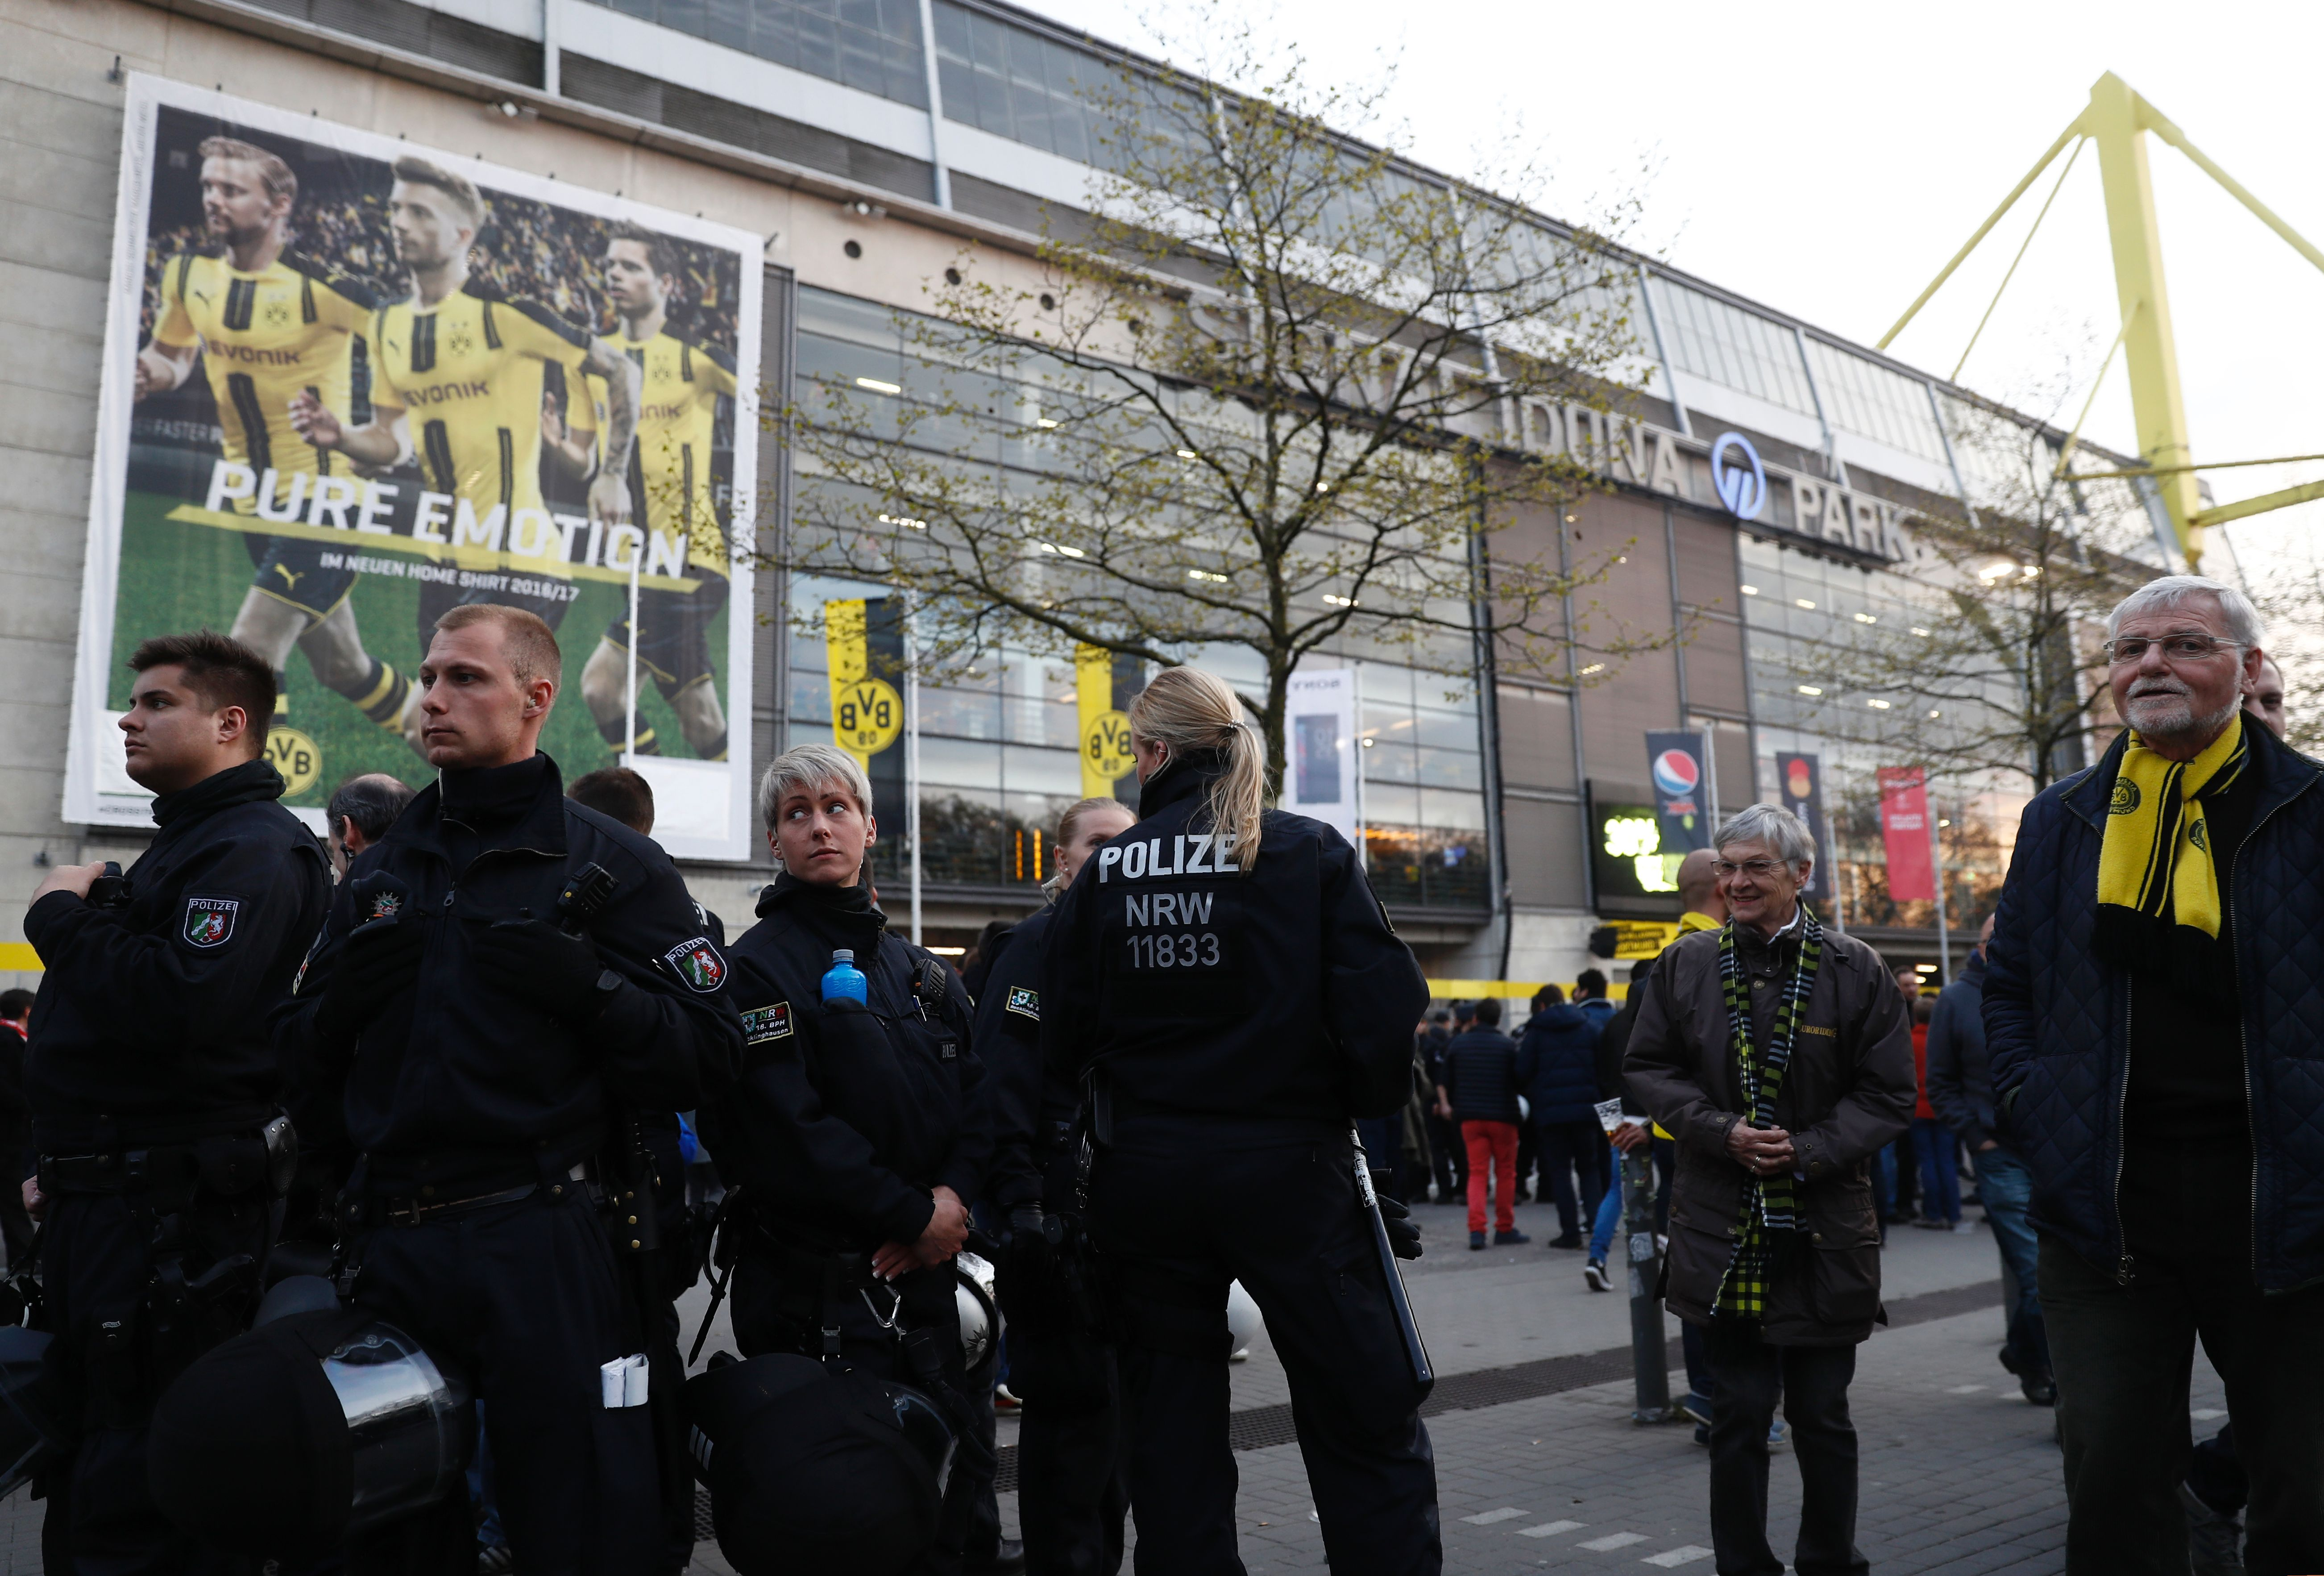 Ambulances are pictured inside stadium after the team bus of Borussia Dortmund had some windows broken by an explosion some 10km away from the stadium prior tothe UEFA Champions League 1st leg quarter-final football match BVB Borussia Dortmund v Monaco in Dortmund, western Germany on April 11, 2017. / AFP PHOTO / Odd ANDERSEN        (Photo credit should read ODD ANDERSEN/AFP/Getty Images)